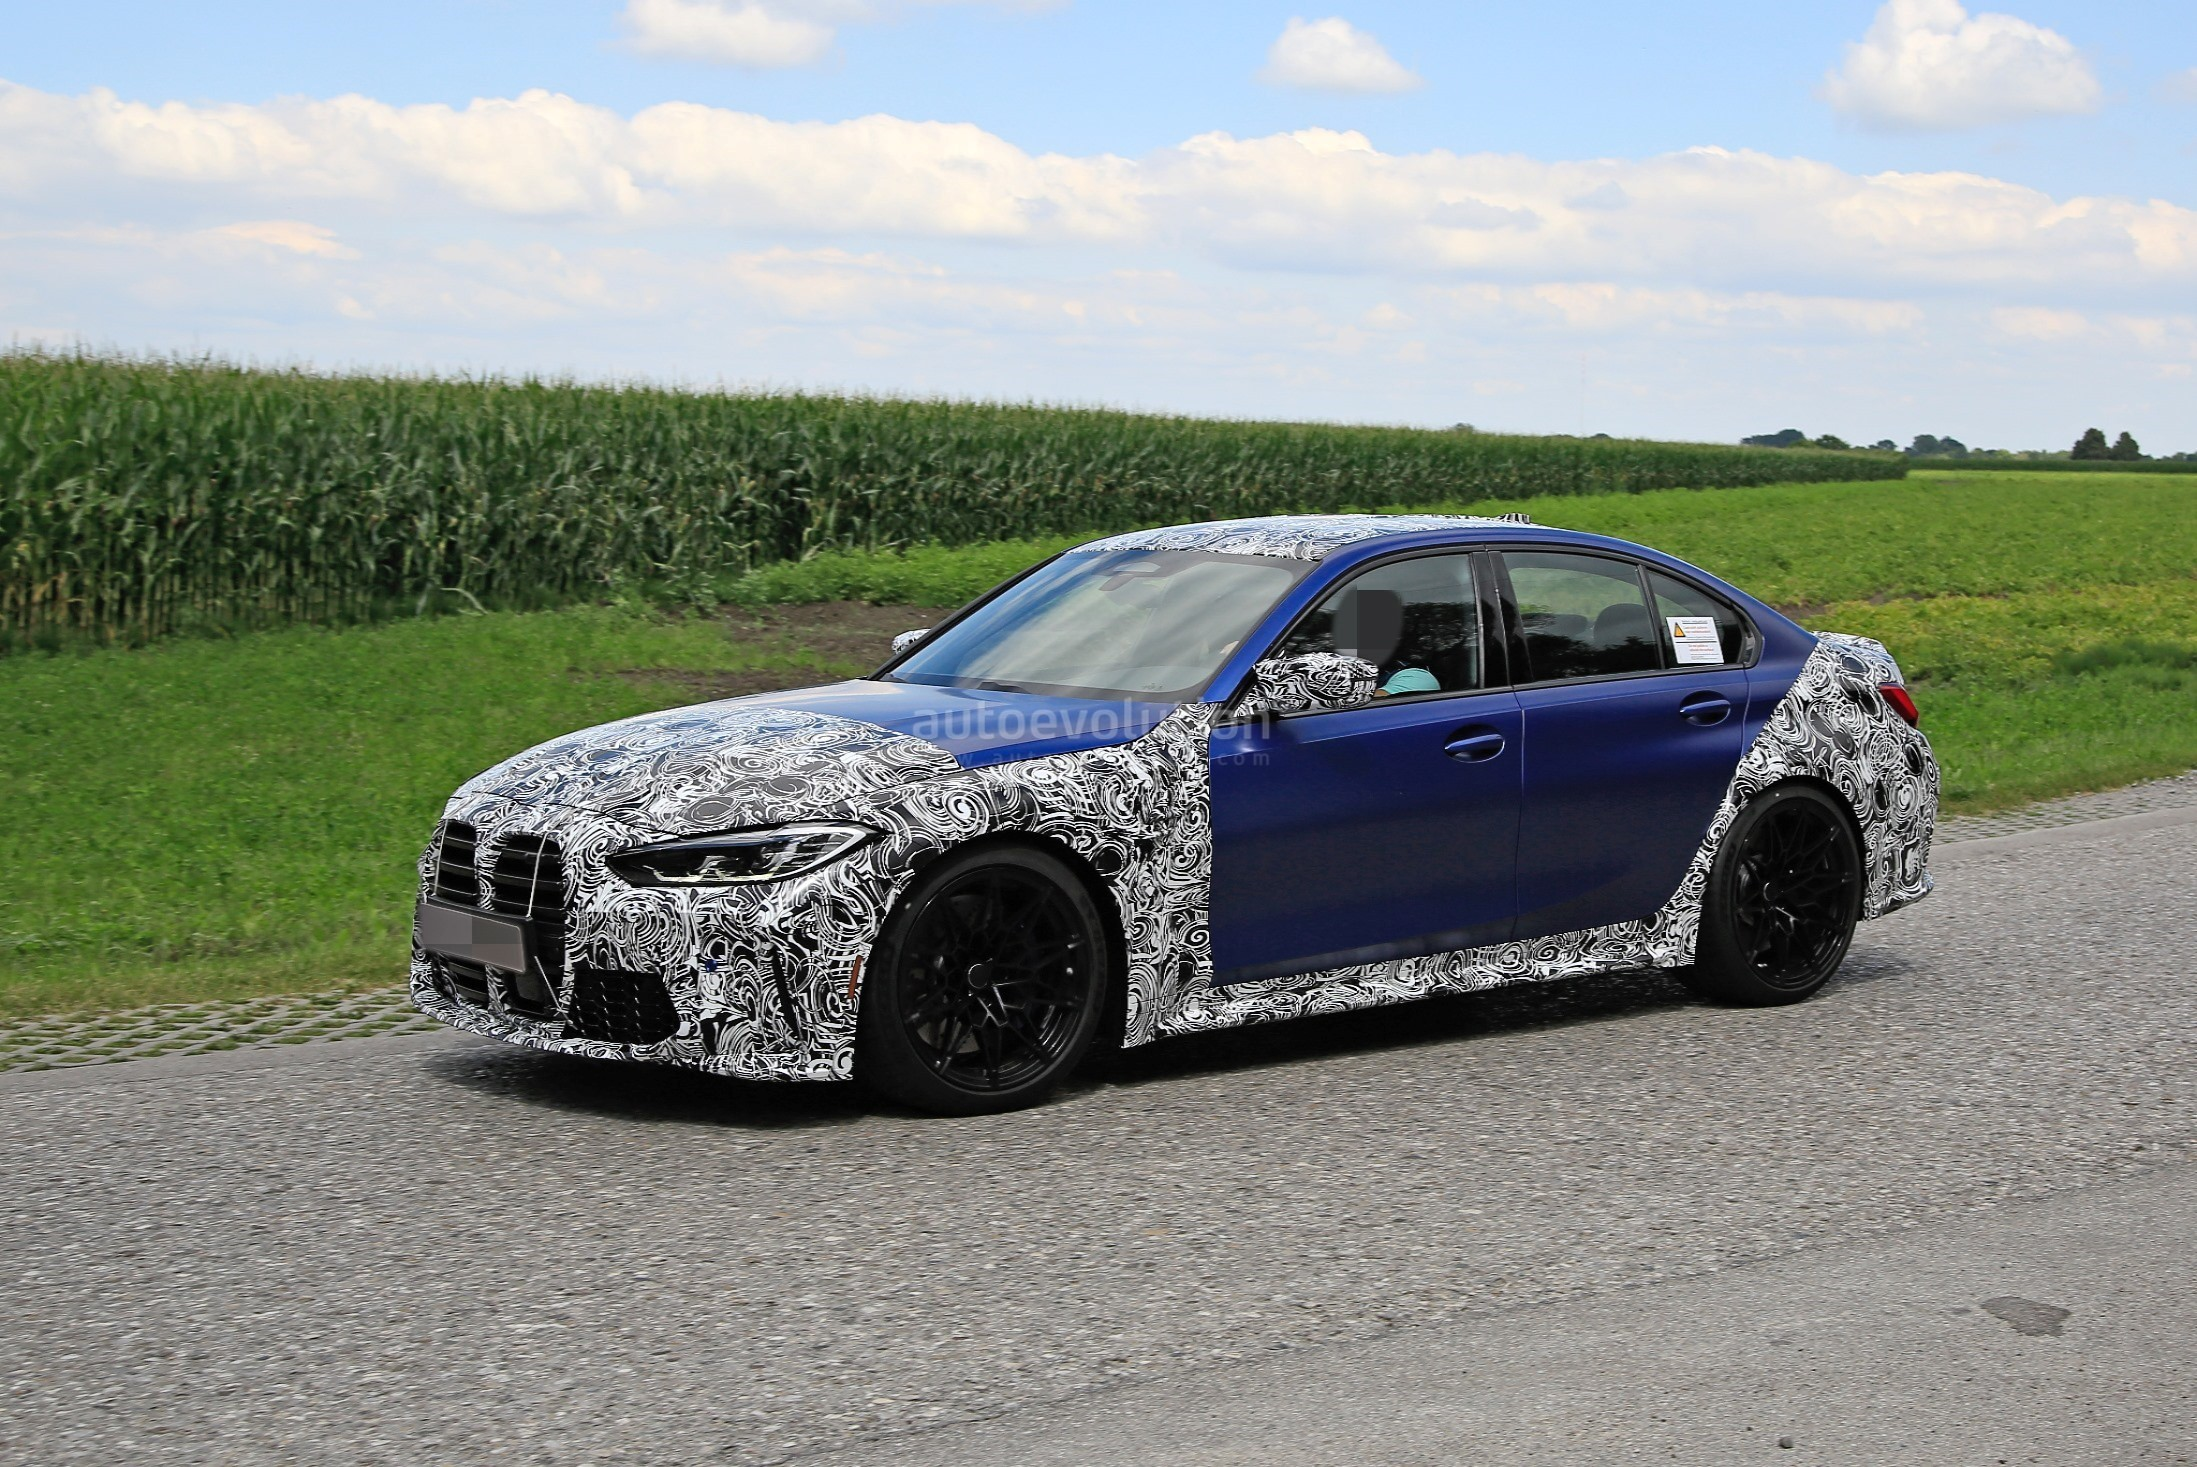 g80-bmw-m3-shows-ginormous-kidney-grille-in-new-spy-phots_3